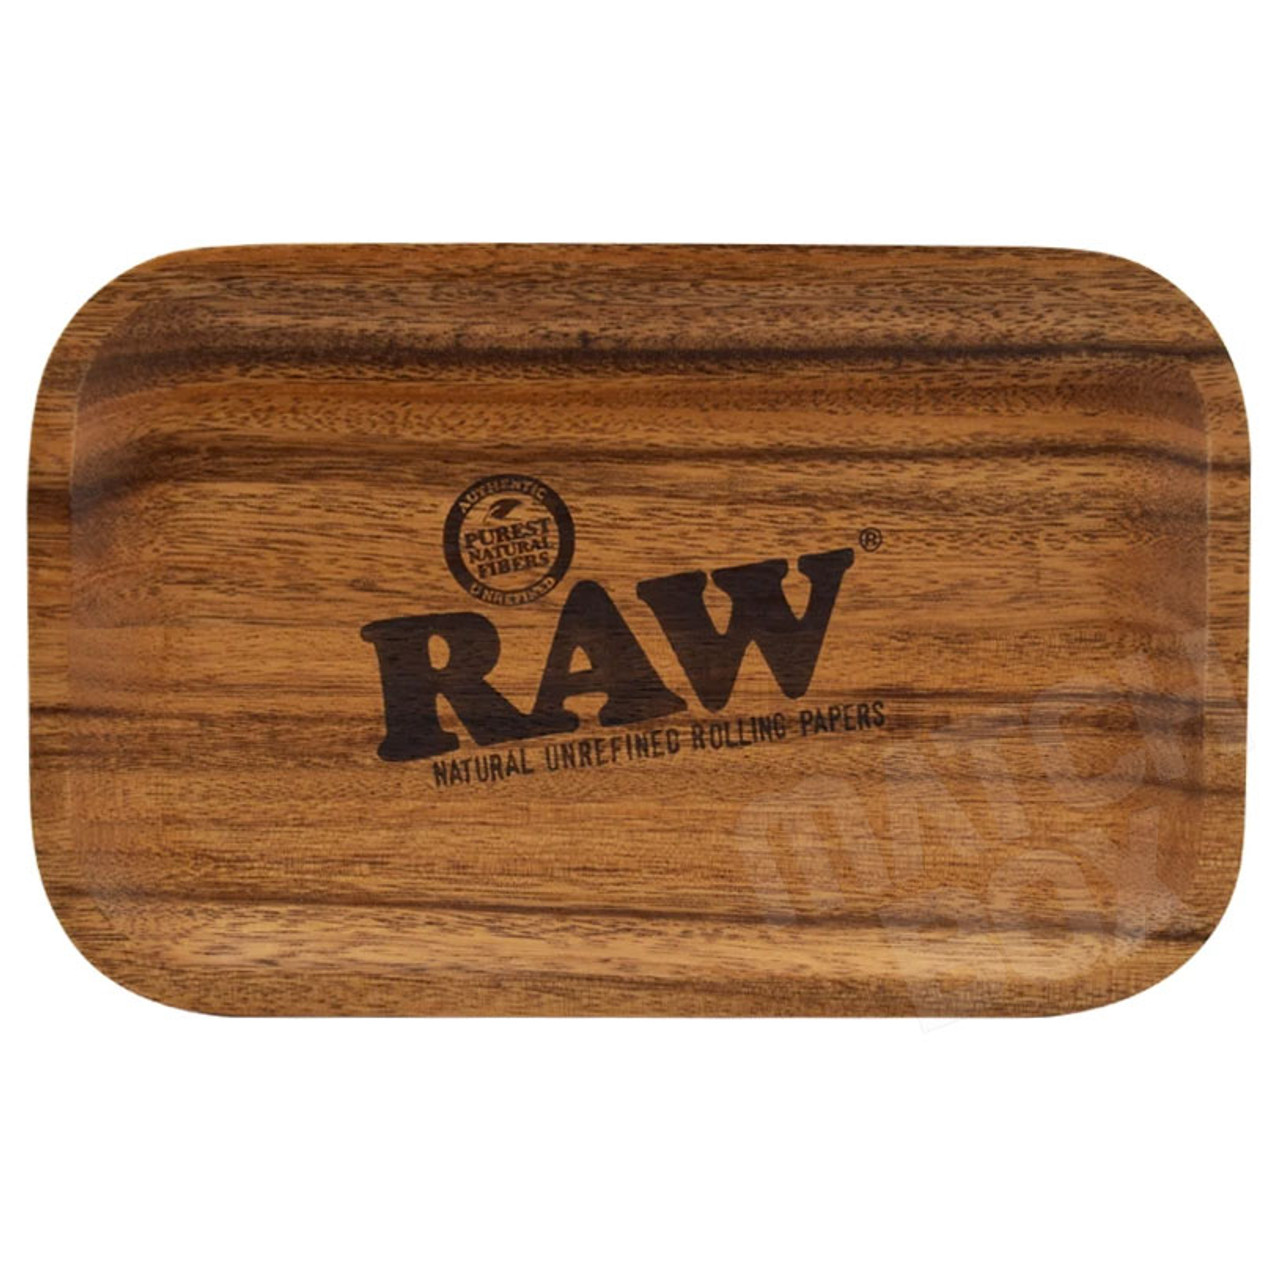 RAW Acacia Wood Rolling Tray